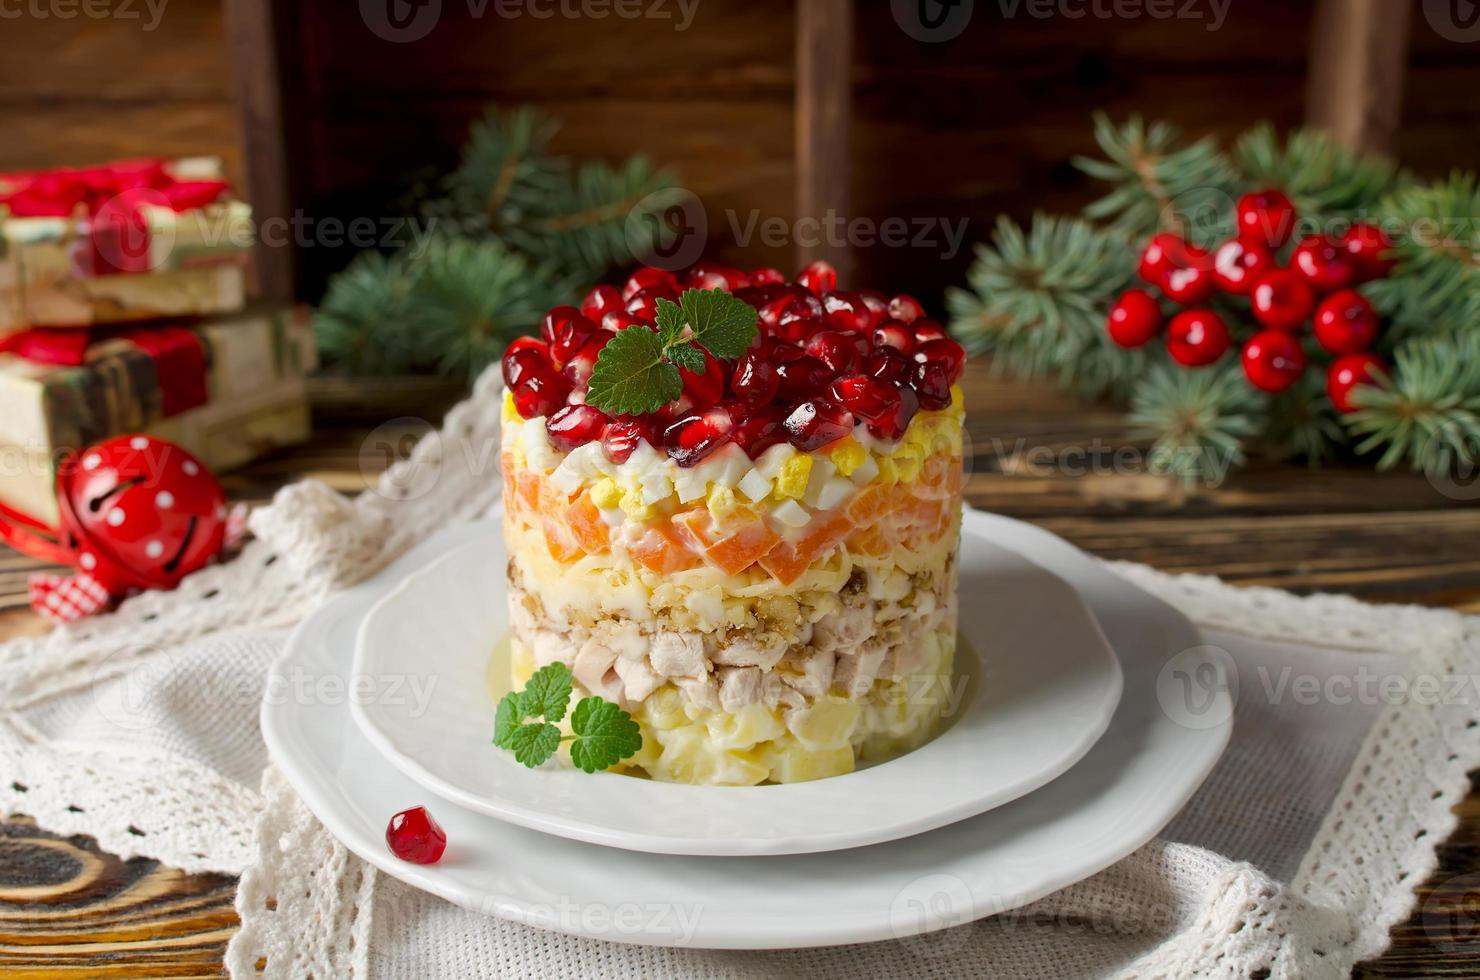 Layered salad from vegetables on the holiday table photo